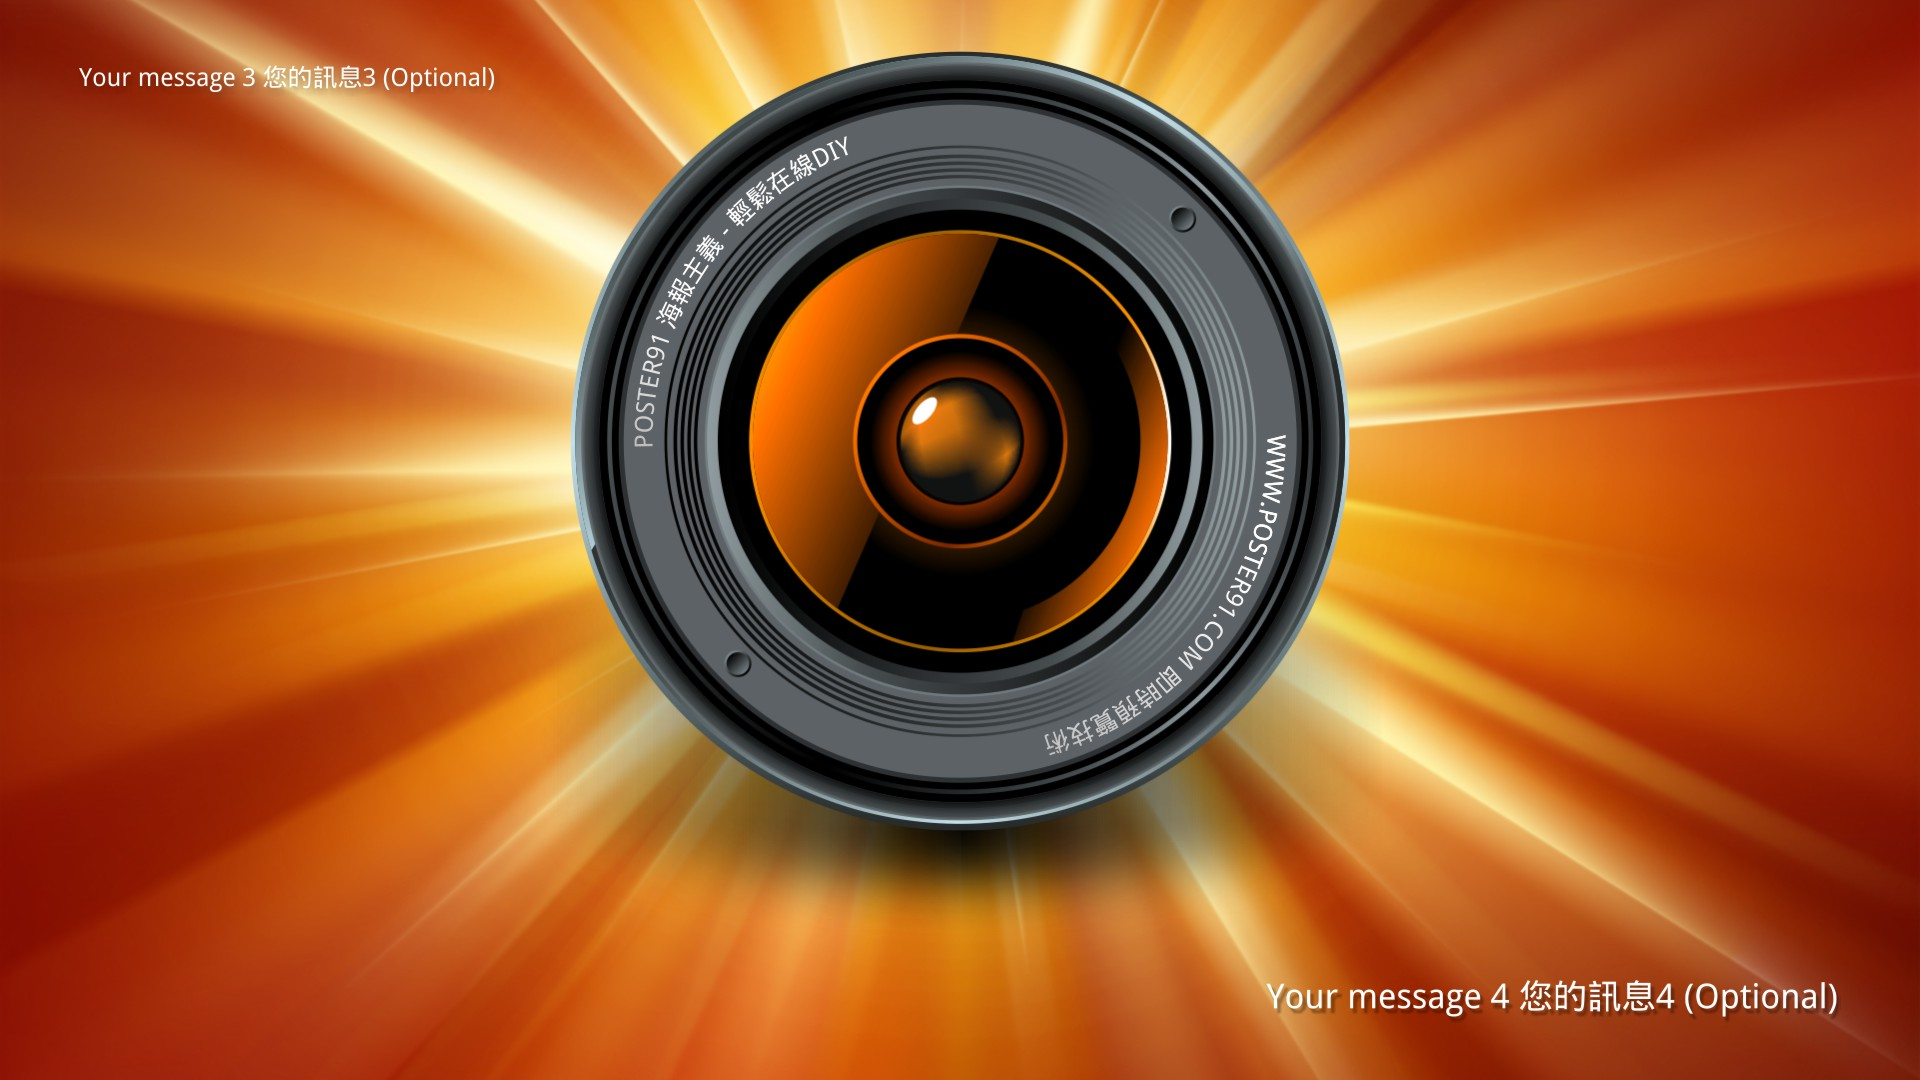 Camera-lens-generator-are-you-the-same-in-front-of-the-camera-1920-x-1080-pixels-HD-ima-wallpaper-wpc9003306